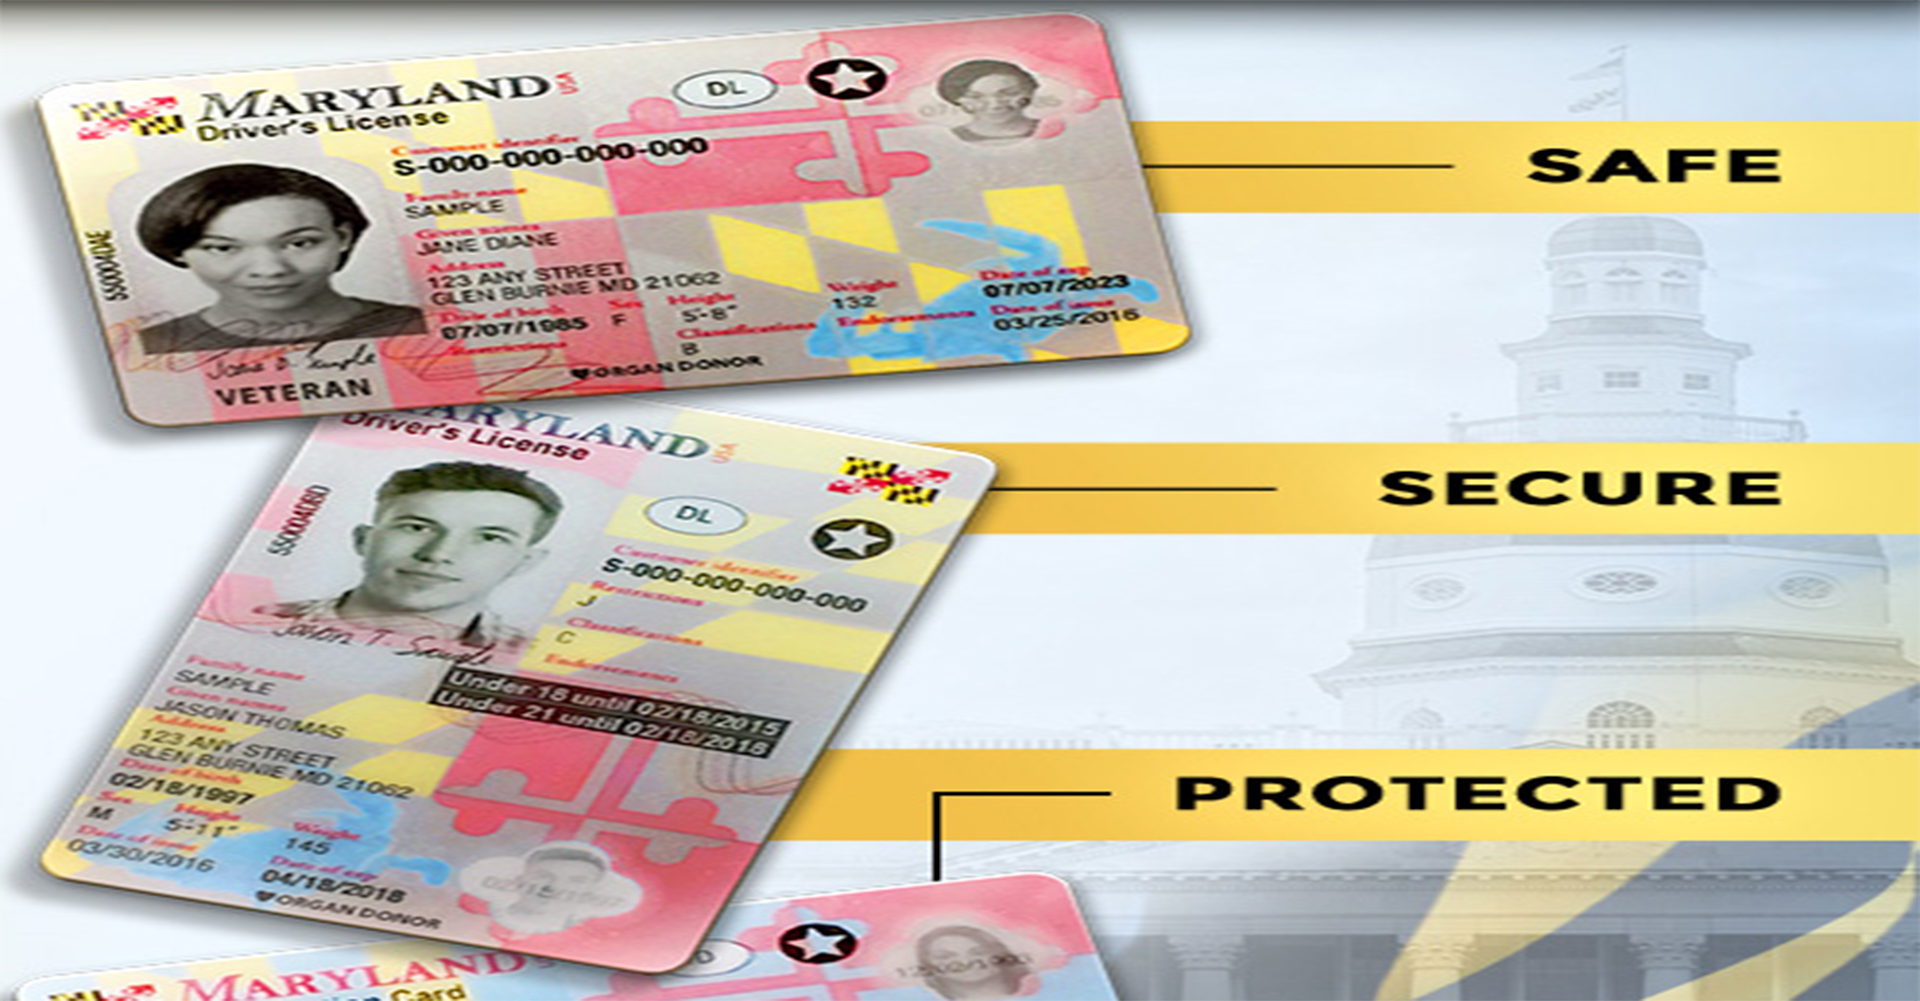 Driver's license, learner's permit and identification (ID) card redesigned completely to avoid identity theft and counterfeiting.